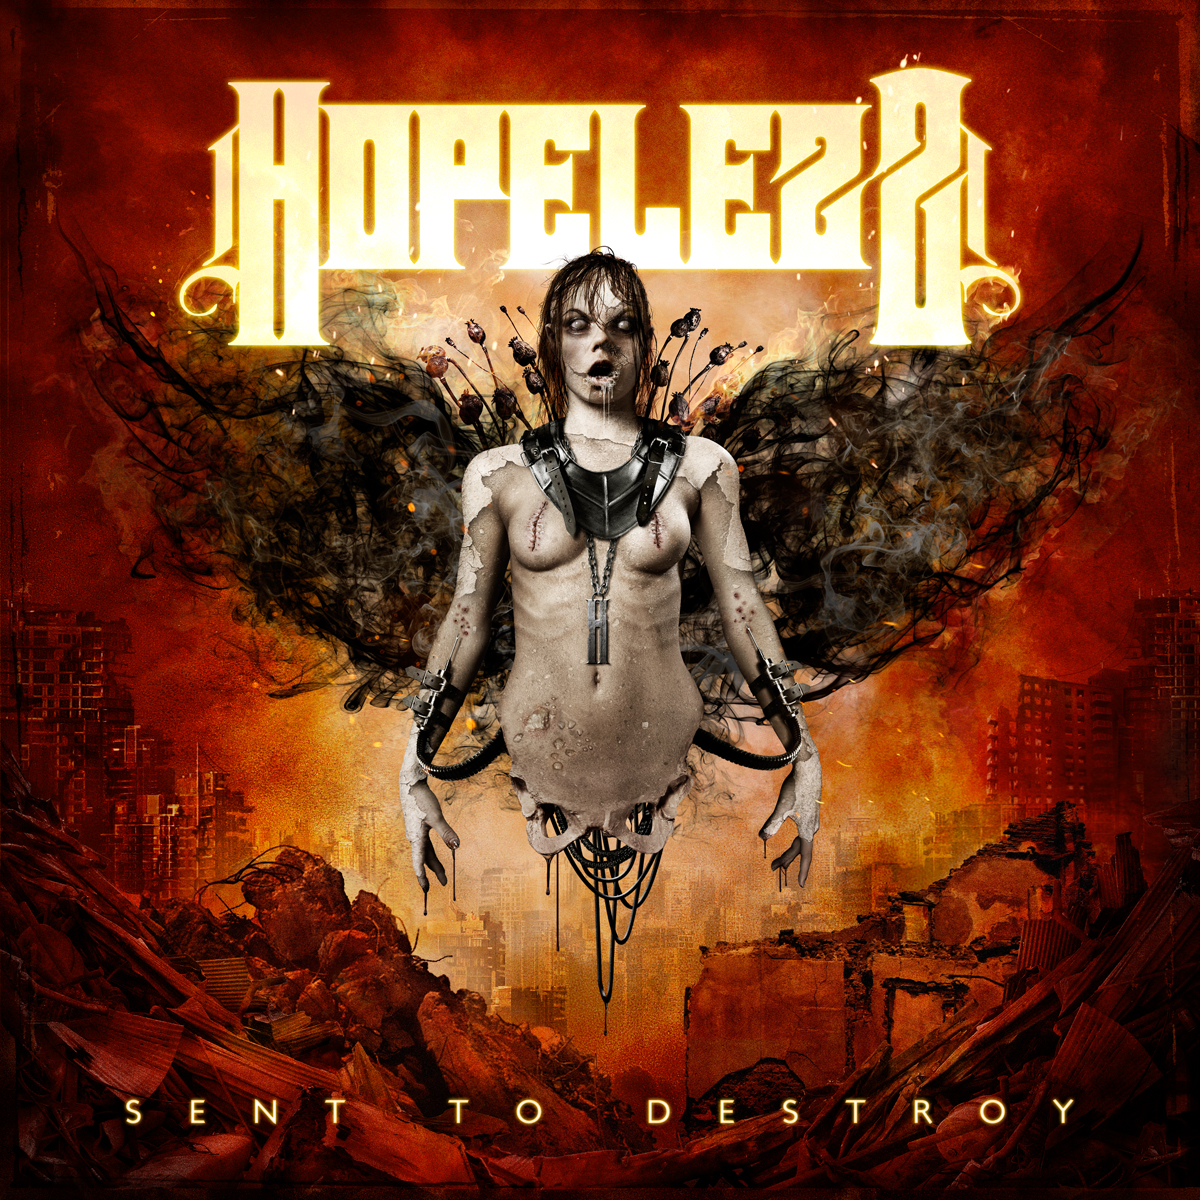 Hopelezz Sent To Destroy CD, Hopelezz - Sent To Destroy,album player, Hopelezz Sent To Destroy (CD),